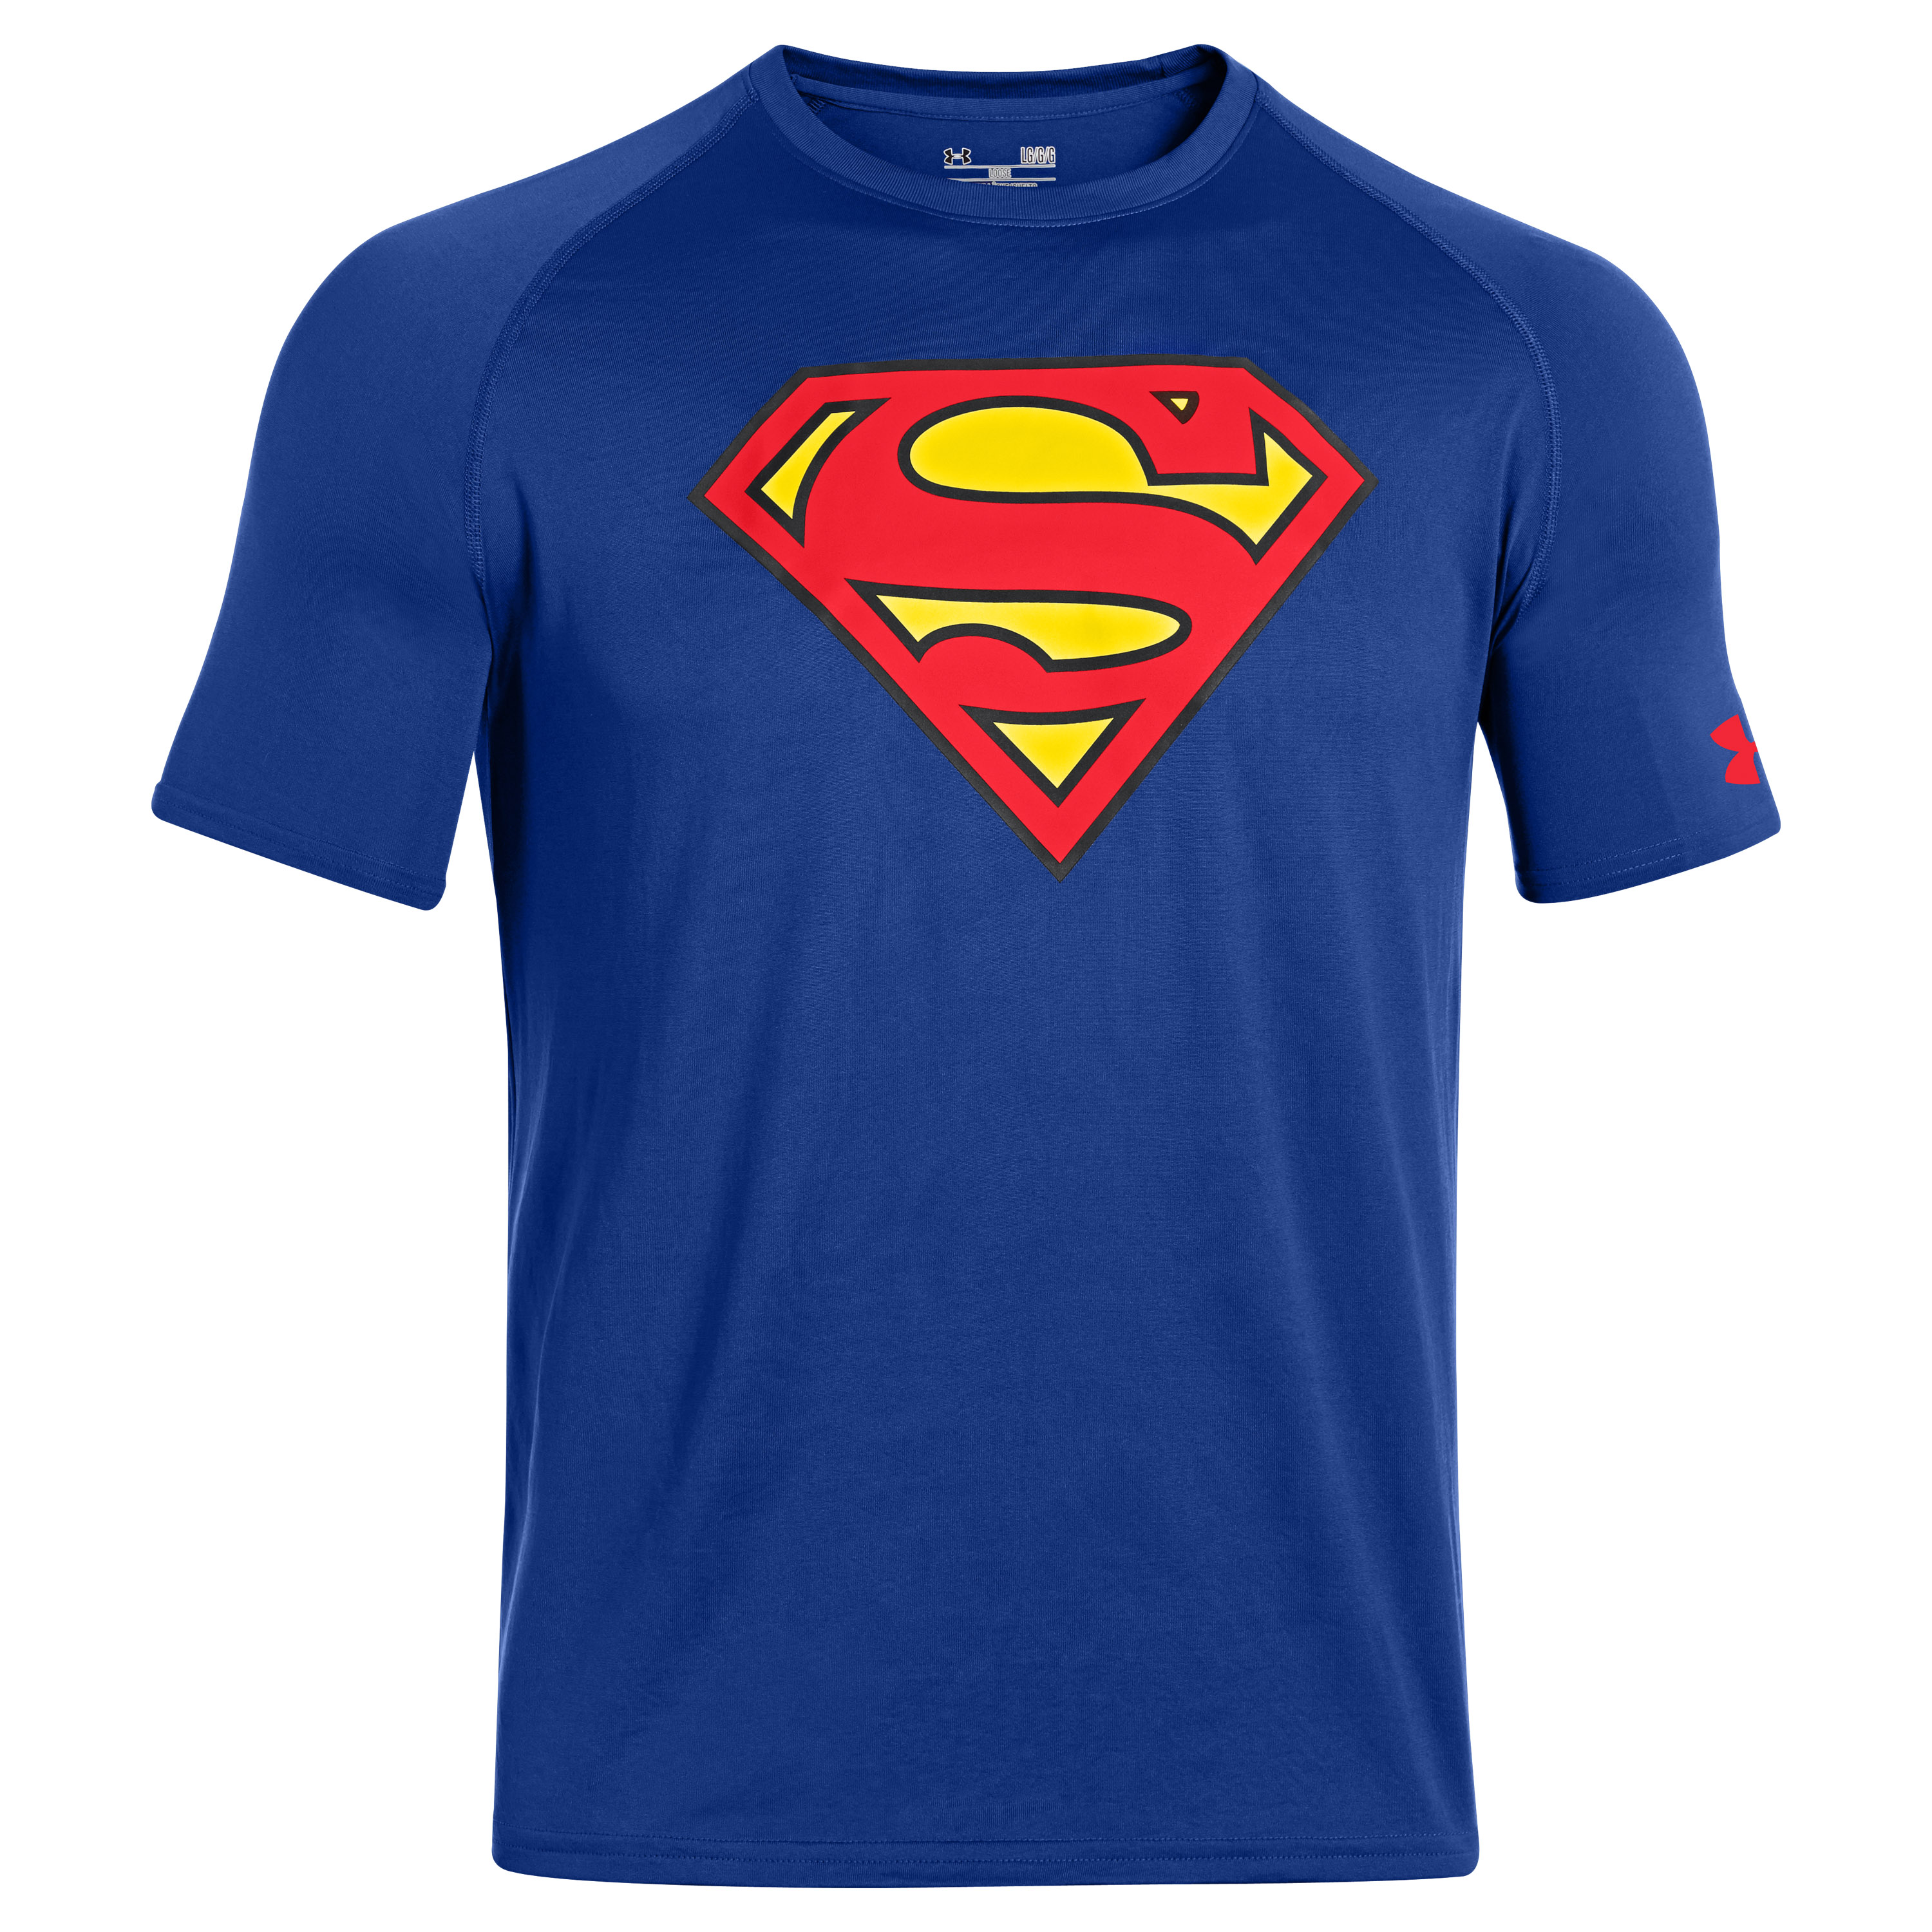 Under Armour Shirt Superman